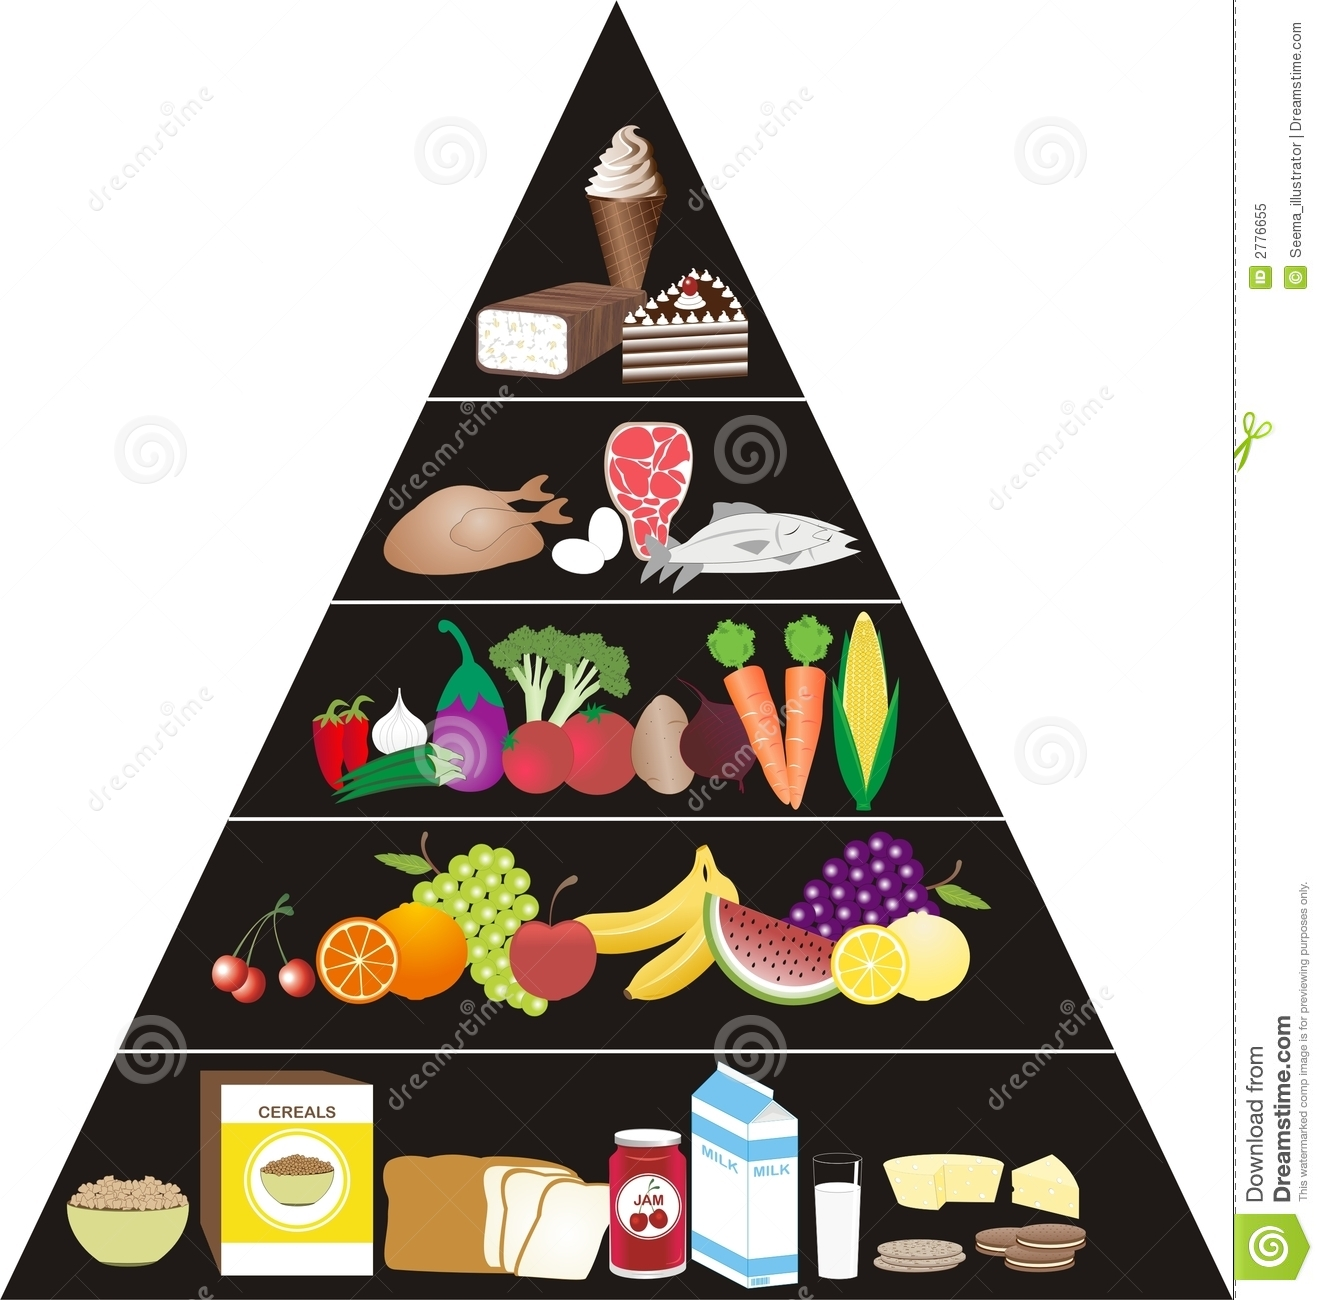 Free Food Pyramid Clipart.